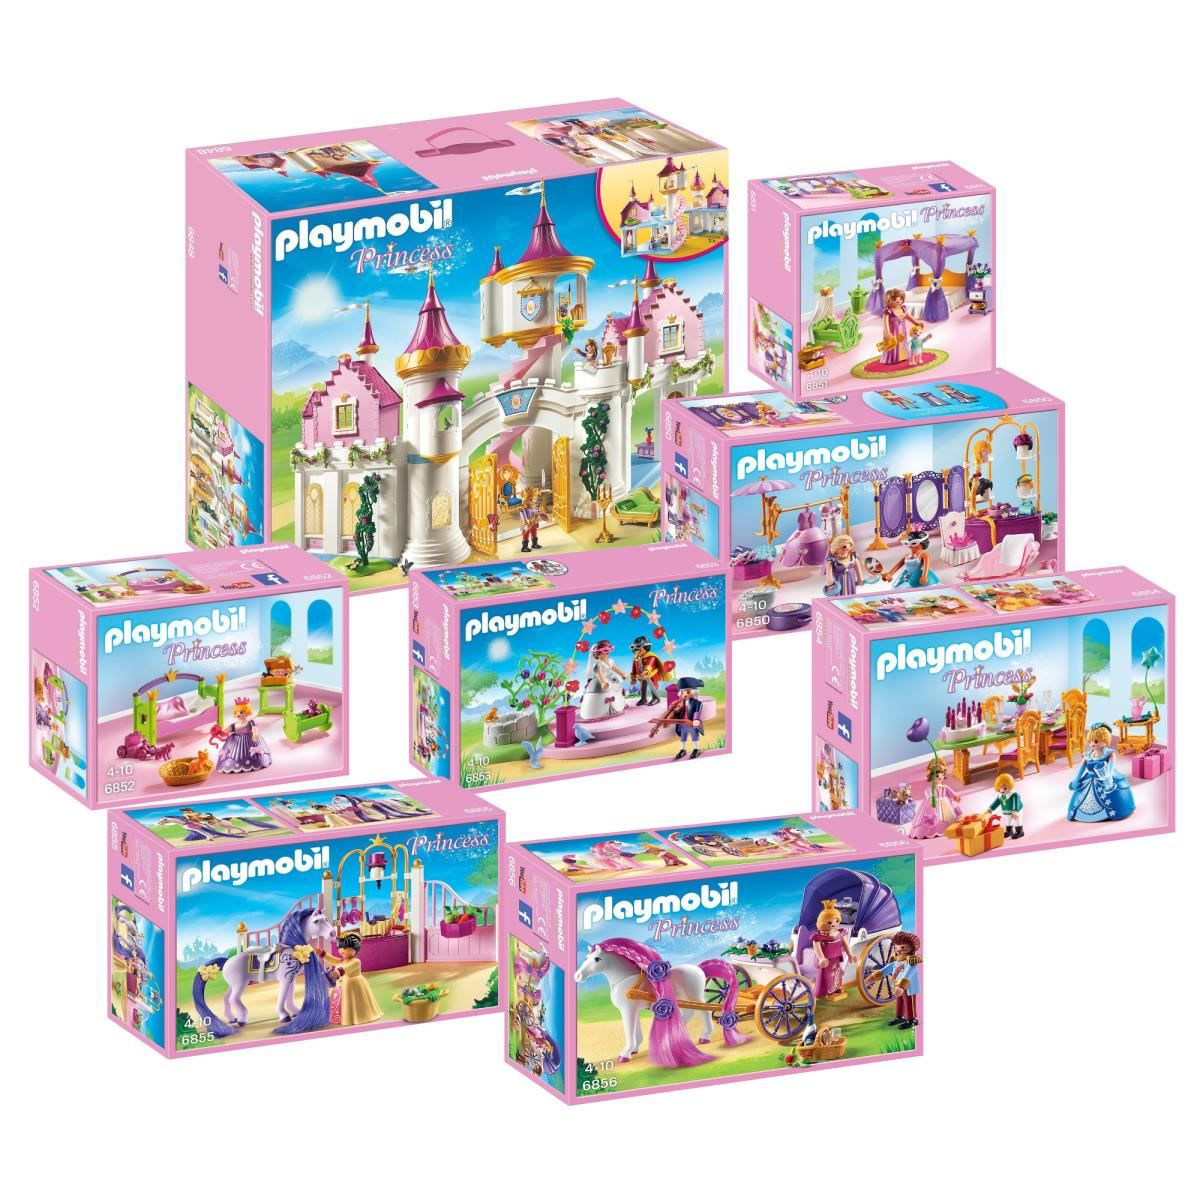 suite de luxe playmobil carrefour hd wallpapers maison moderne - Play Mobile Fille